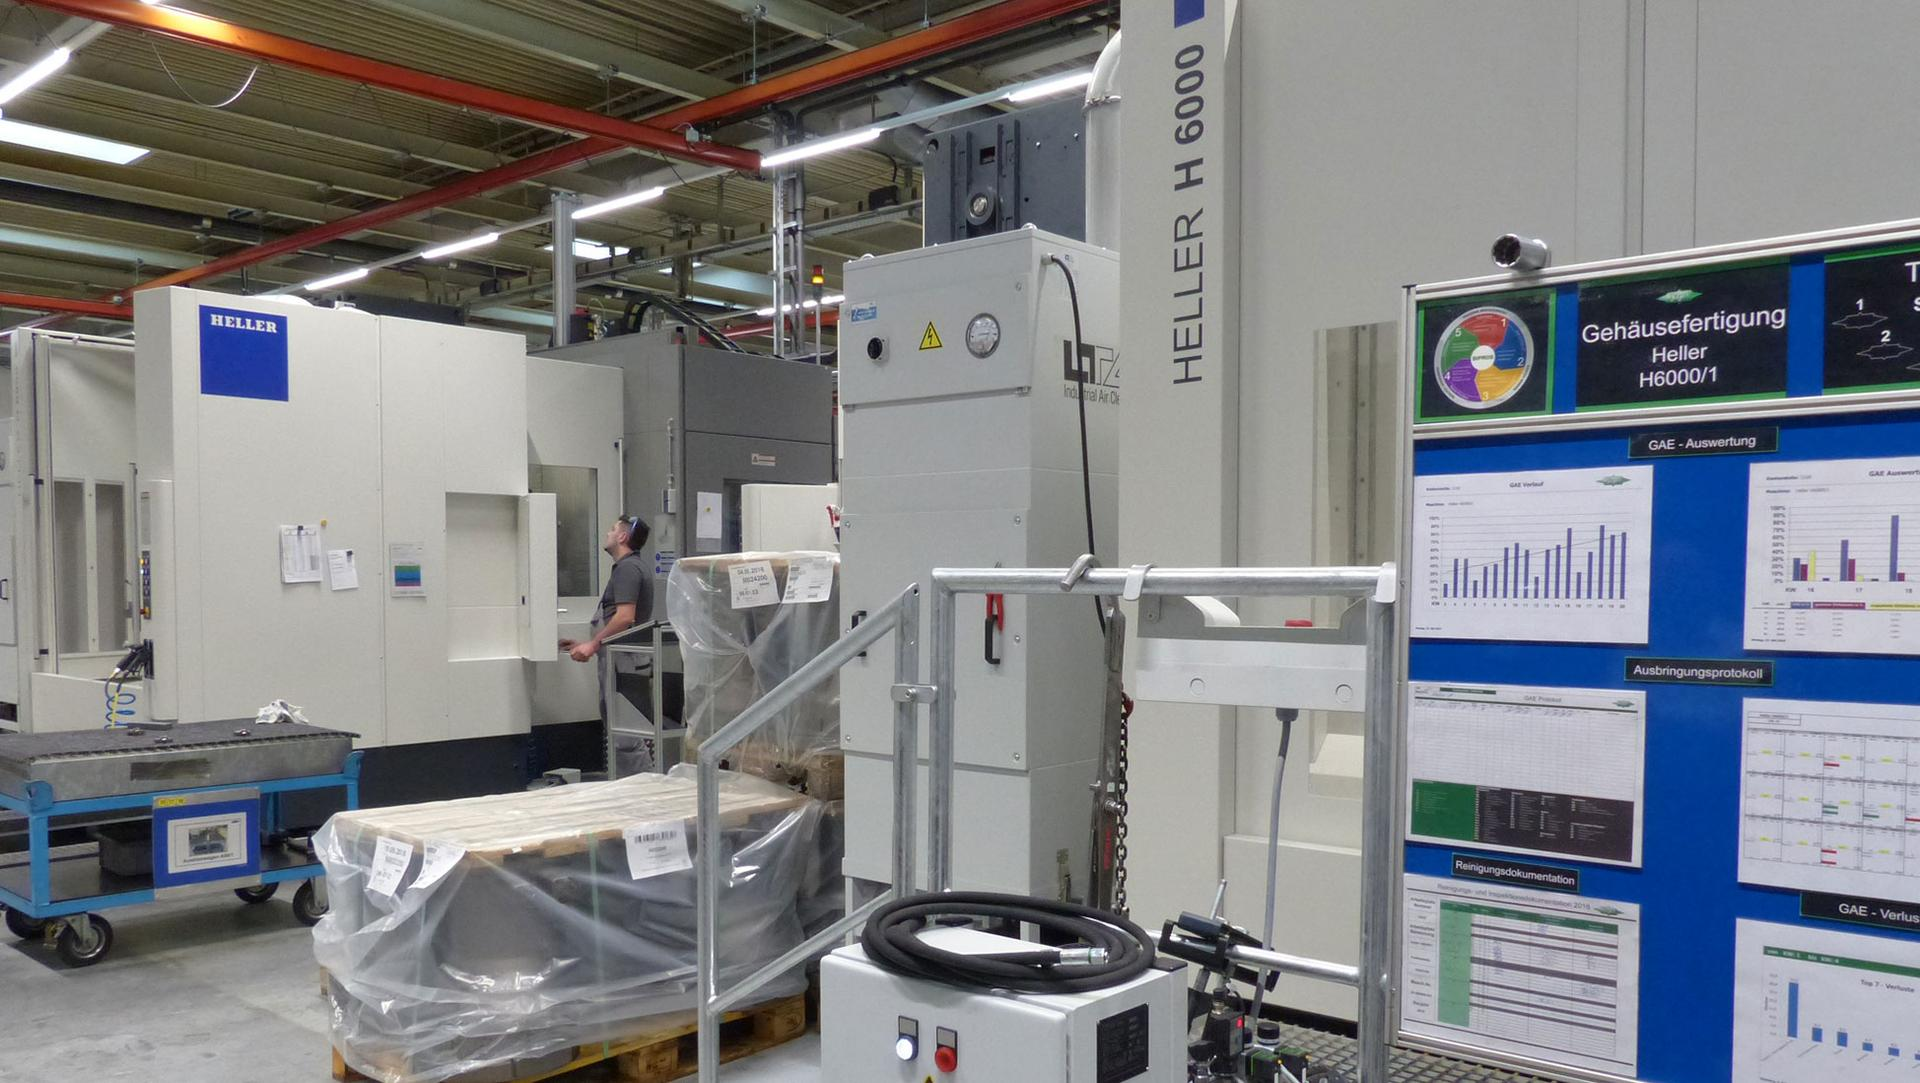 HELLER solutions at Bitzer